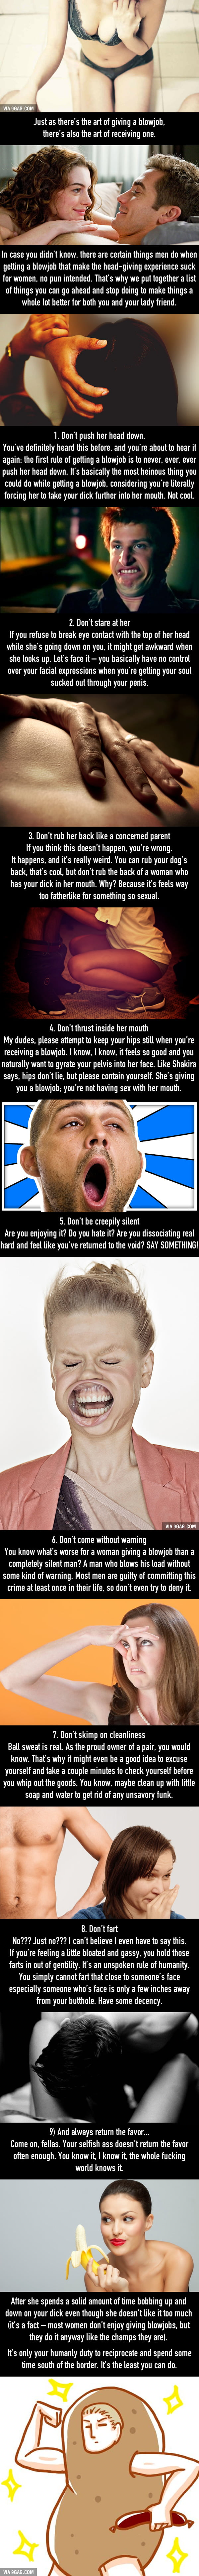 9 things you should never lie about